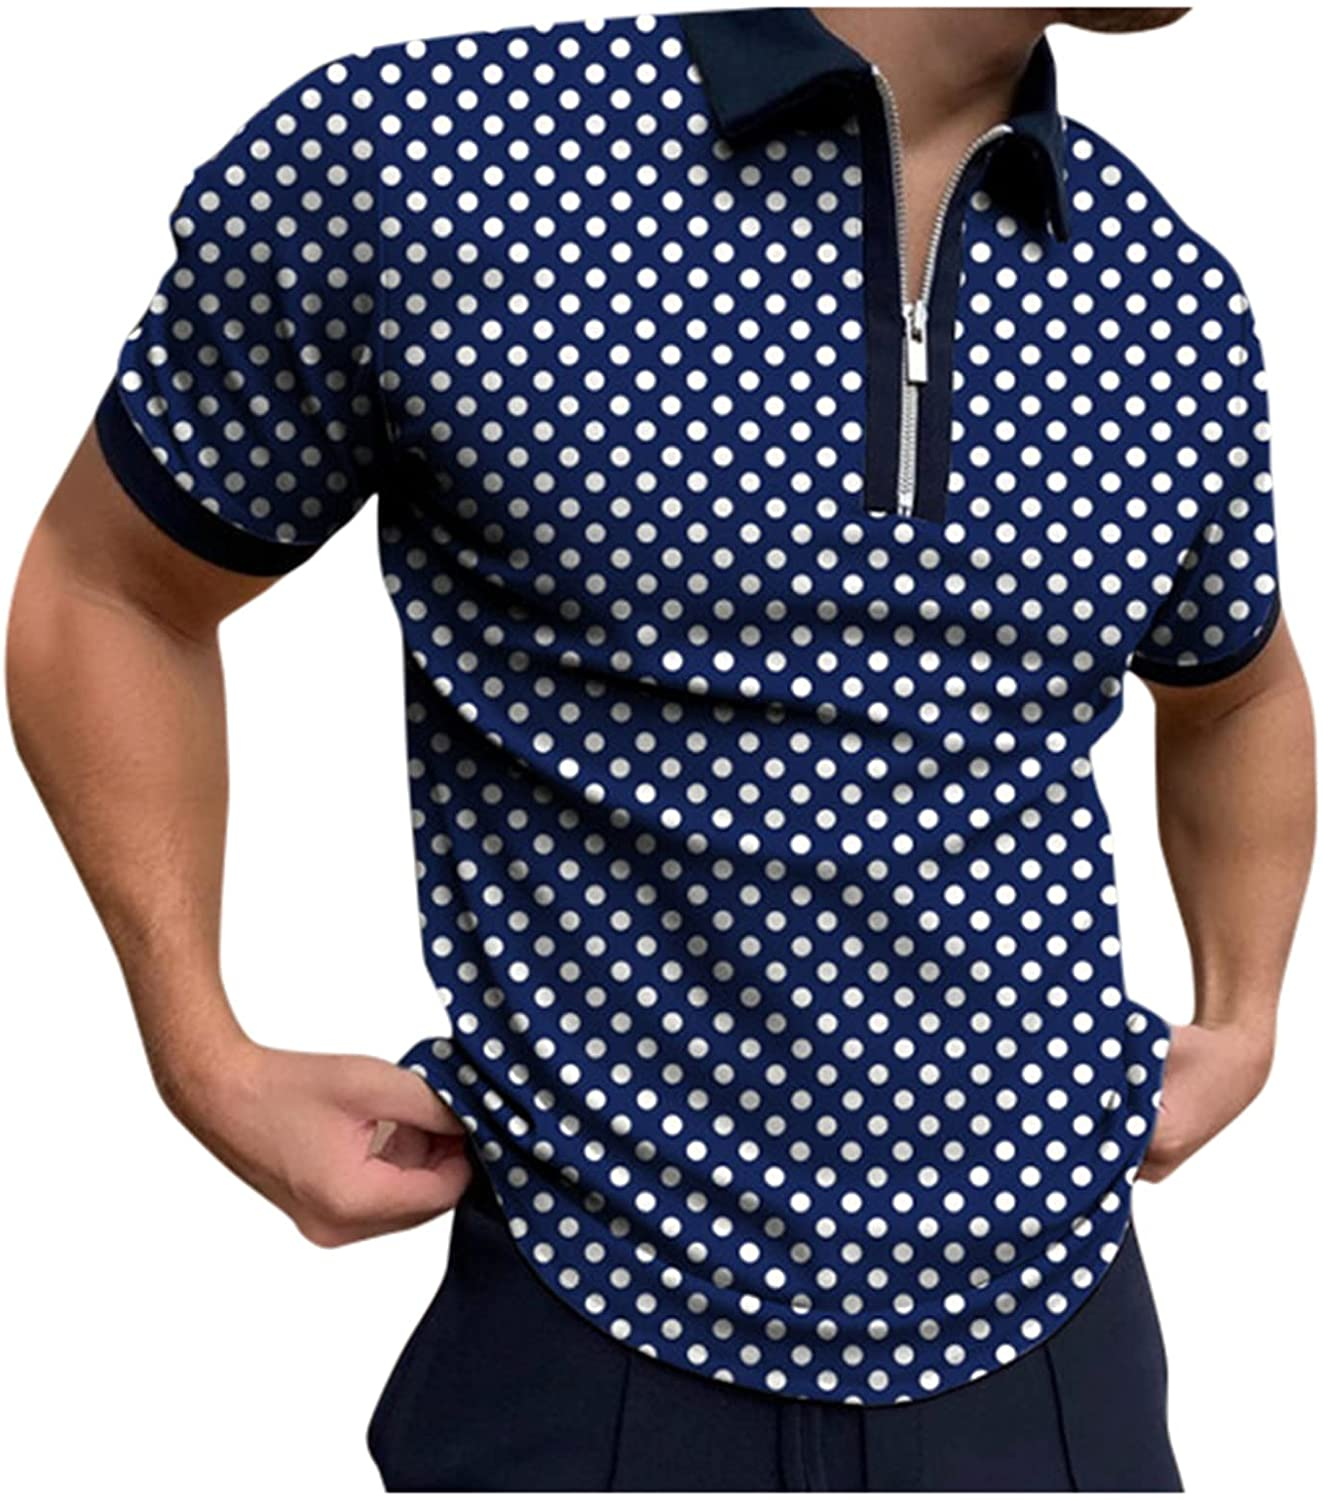 HONGJ Zipper Polo Shirts for Mens, Fall Summer Striped Slim Fit Short Sleeve T Shirt Business Casual Tops for Work Wear